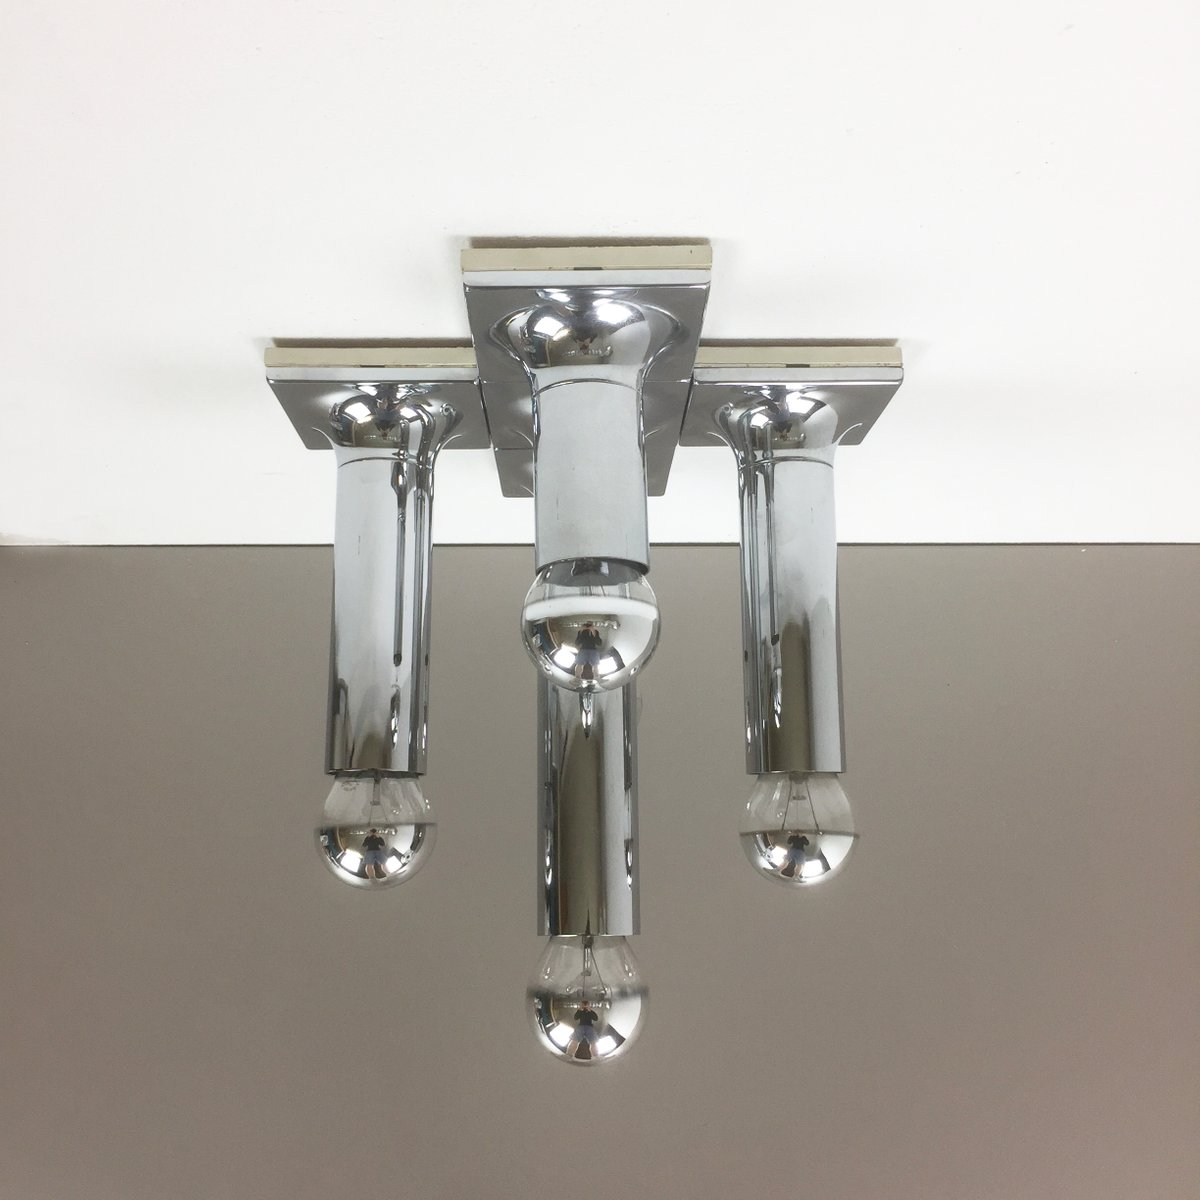 Tube ceiling lights by rolf krger for staff 1970s for sale at pamono aloadofball Choice Image